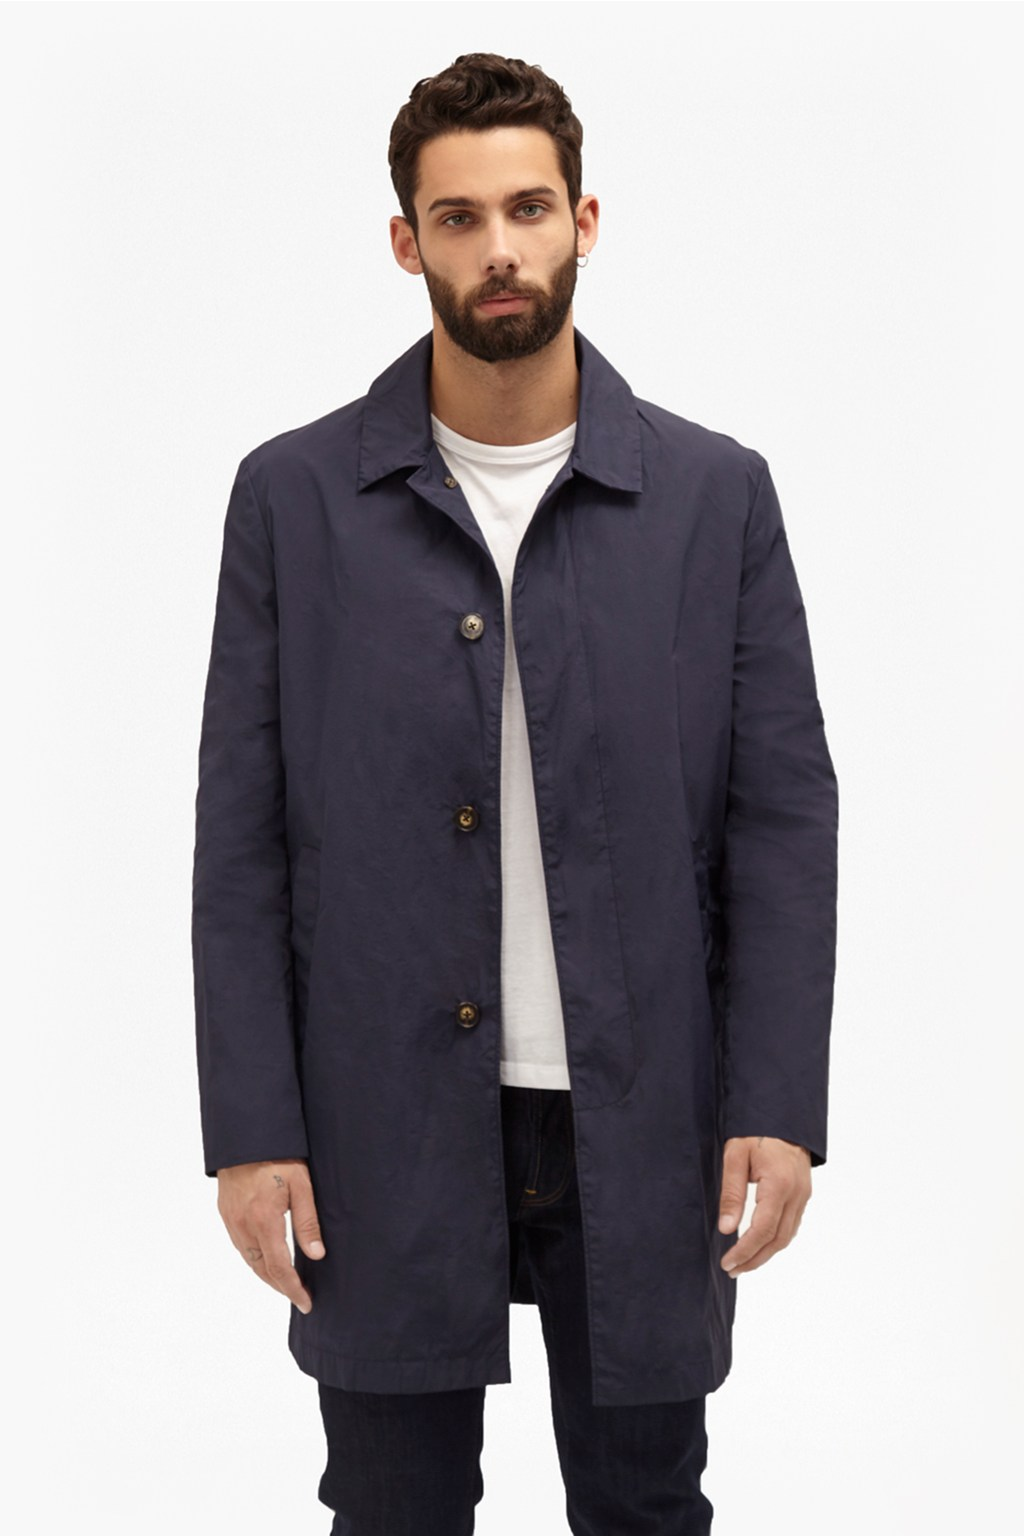 A mac or trench coat is ideal for the tricky transition between seasons. Our men's edit includes lightweight, water-repellent styles smart enought for your daily commute. If you're after something with more protection, go for a hooded option.